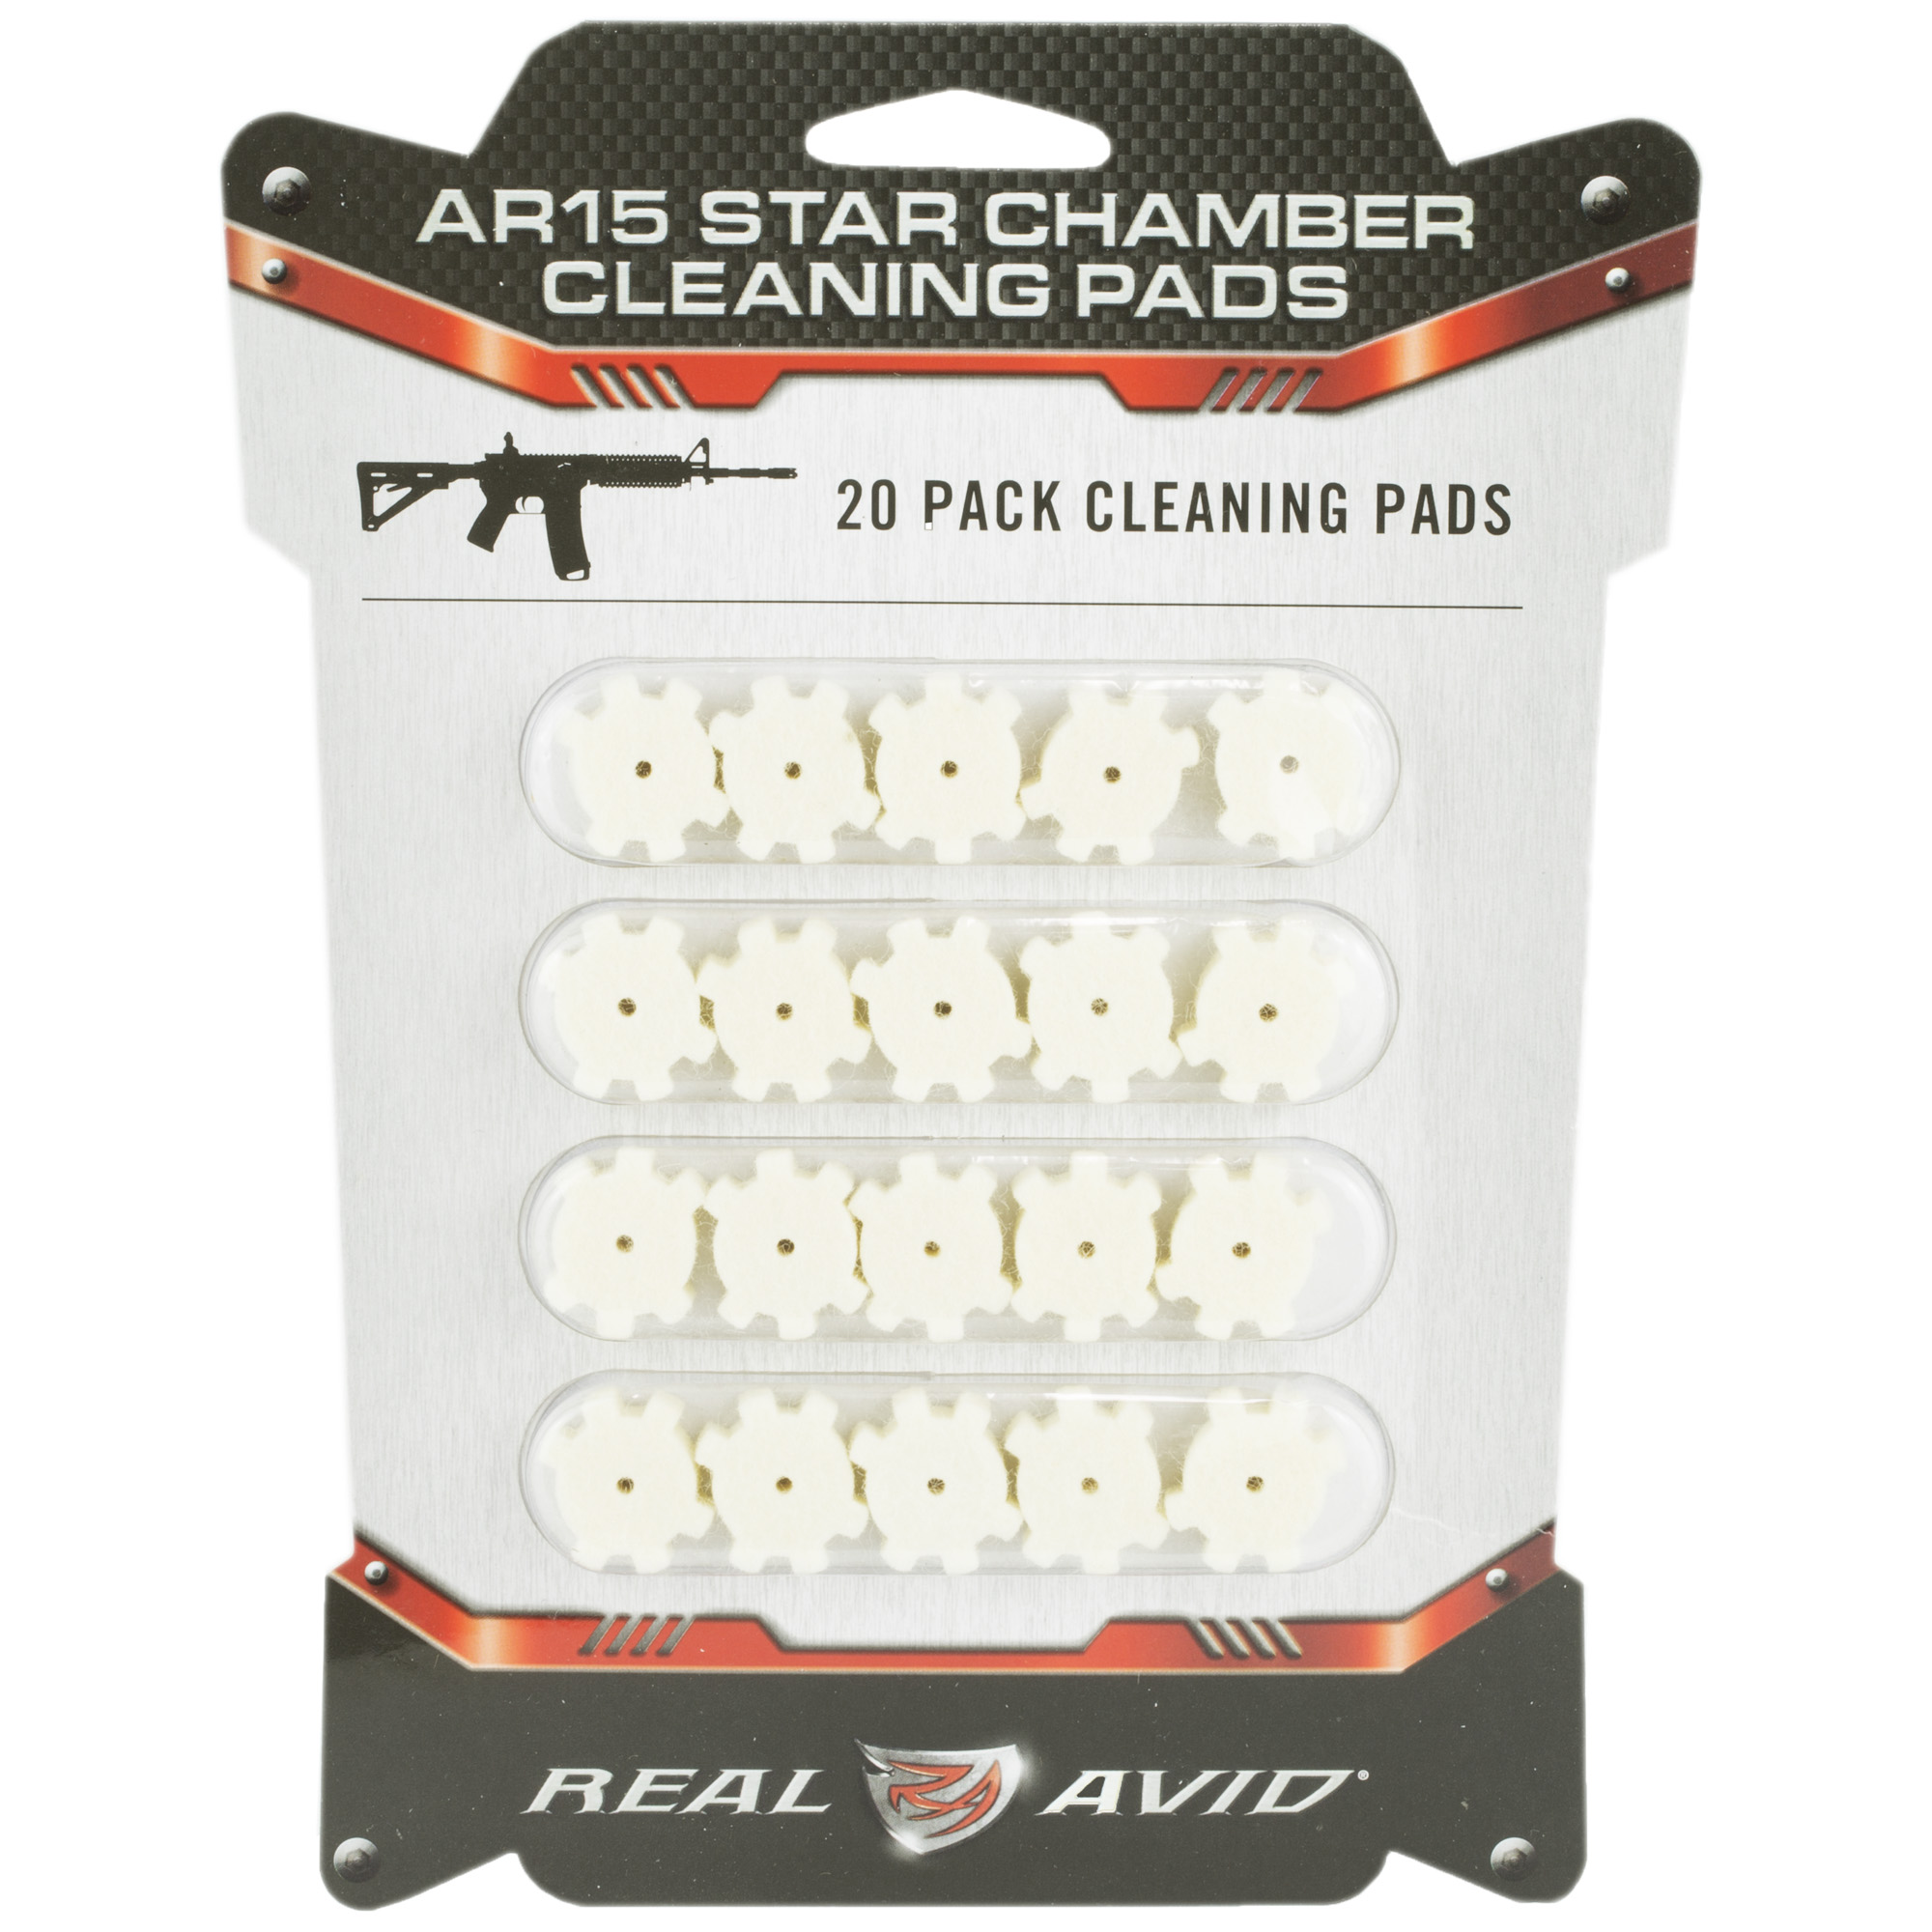 There's no easy way to scrape carbon out of the star chamber of an AR15 unless you're a surgeon. That's why you use a star chamber brush to loosen the carbon then remove it with these star chamber cleaning pads. Done deal. Now get back to shooting. 20 wool chamber pads per package.